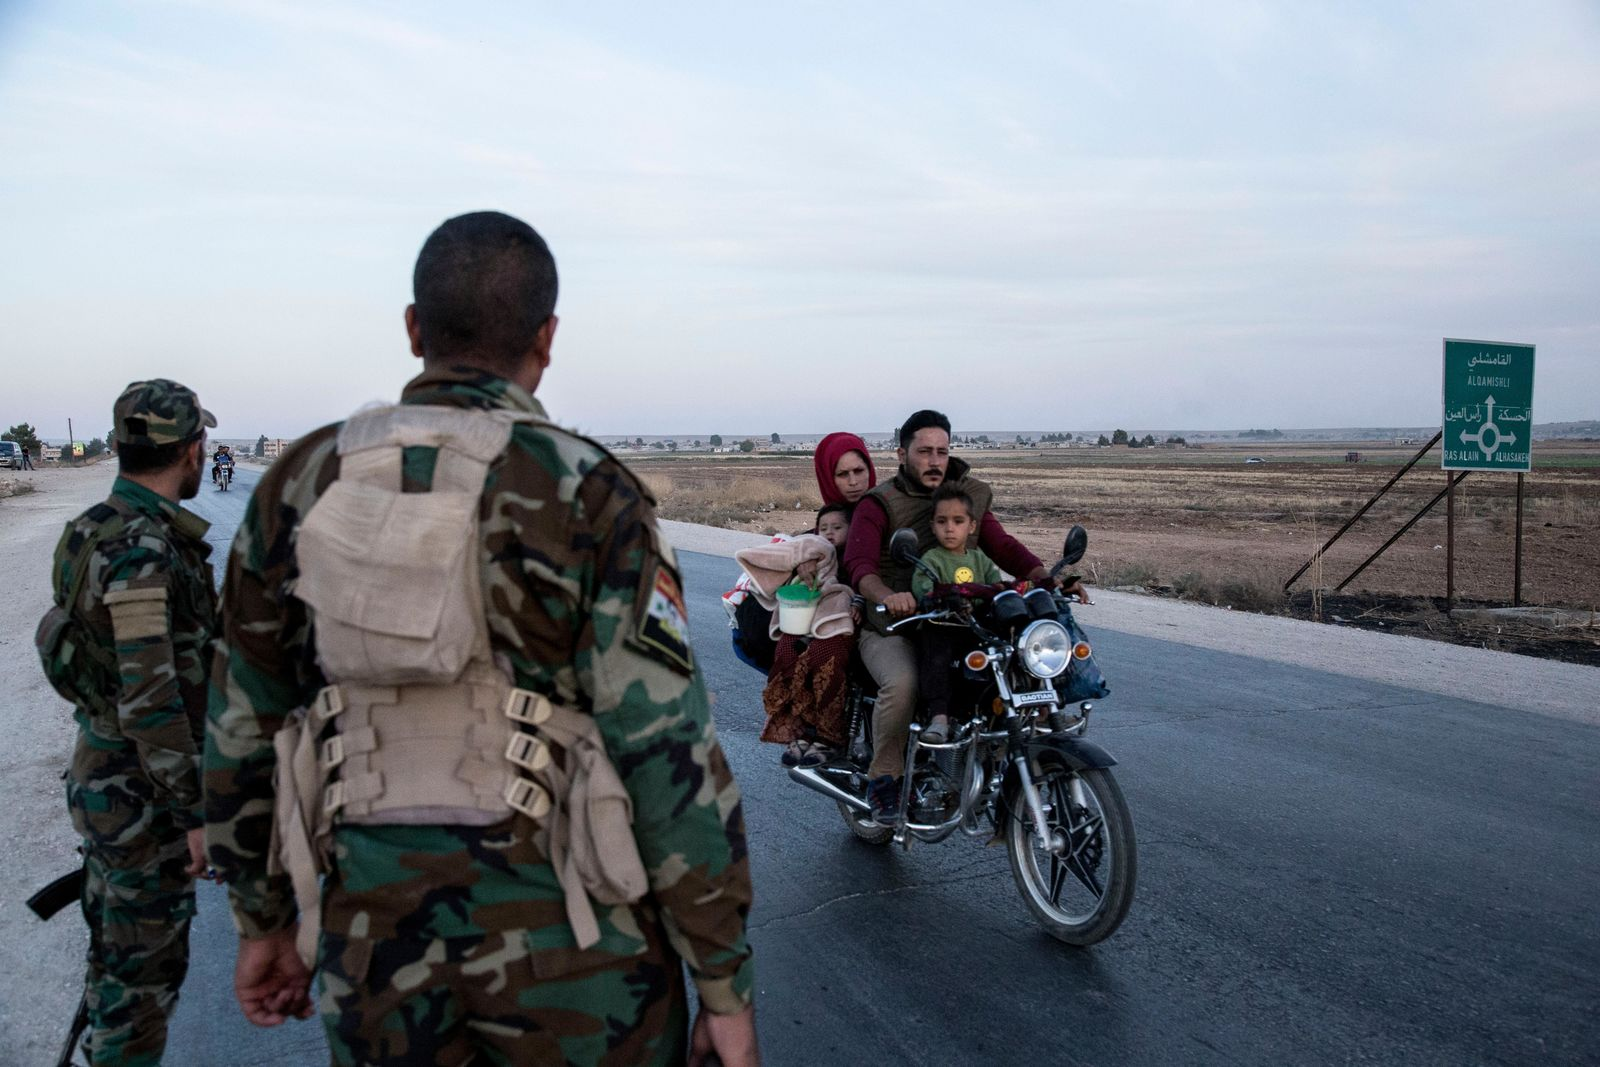 Syrian government troops man a checkpoint town of Tal Tamr in northeast Syria, Monday, Oct. 14, 2019. (AP Photo/Baderkhan Ahmad)